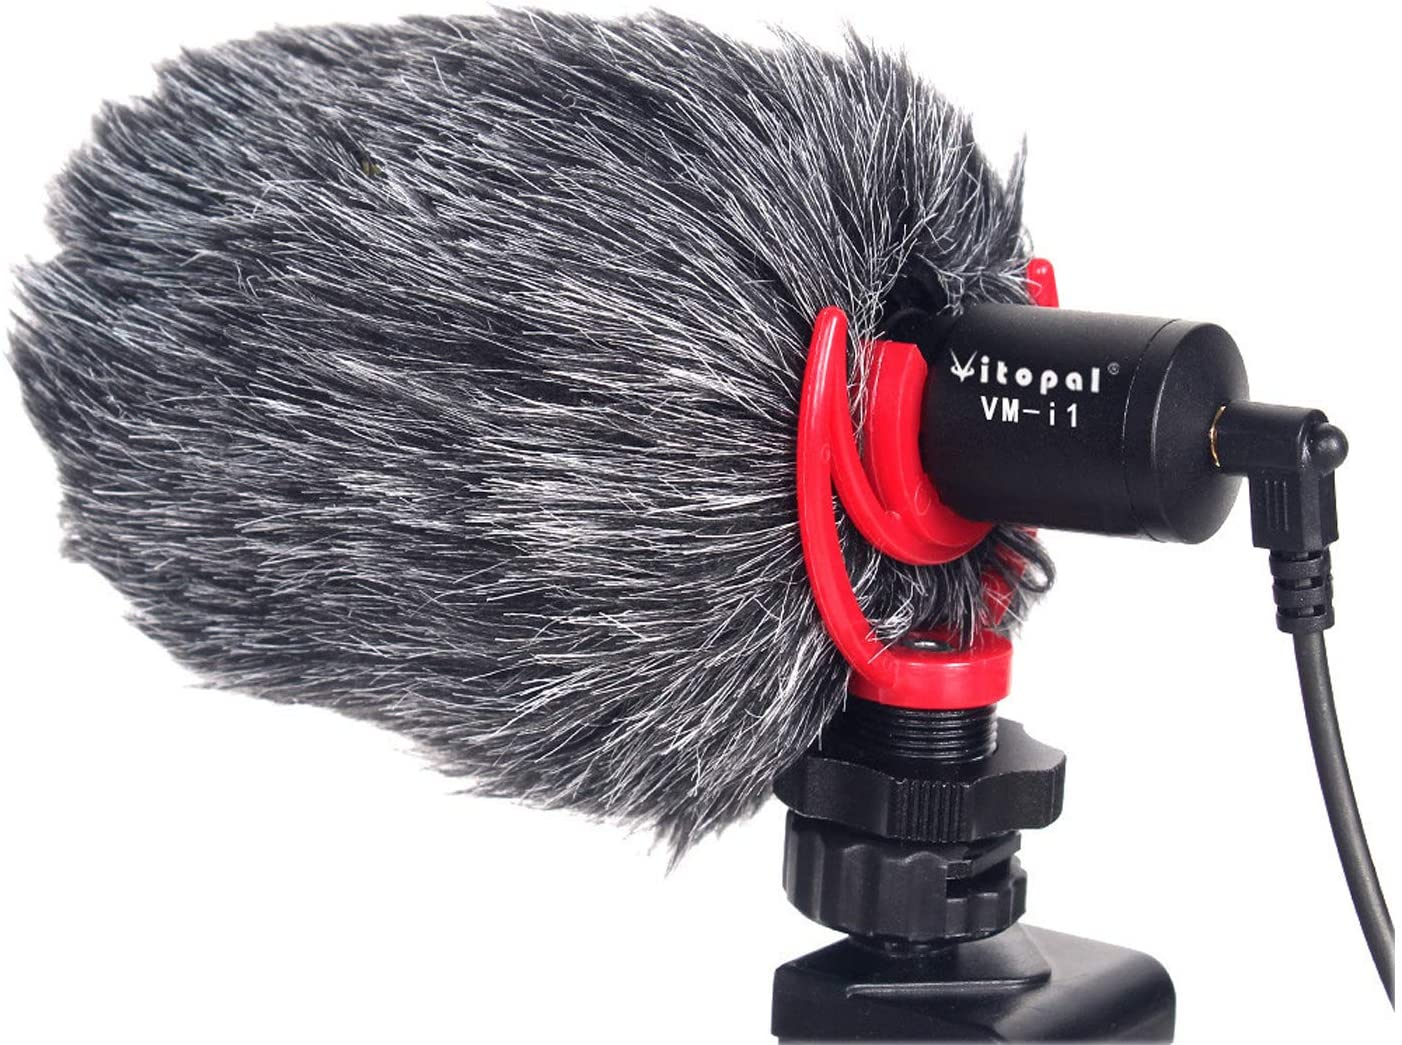 Vitopal VM-i1 Compact On Camera Microphone with Shock Mount, Wind Shield and 3.5mm Cable Compatible with iPhone, Android Smartphones, Tablets, DSLR Camera